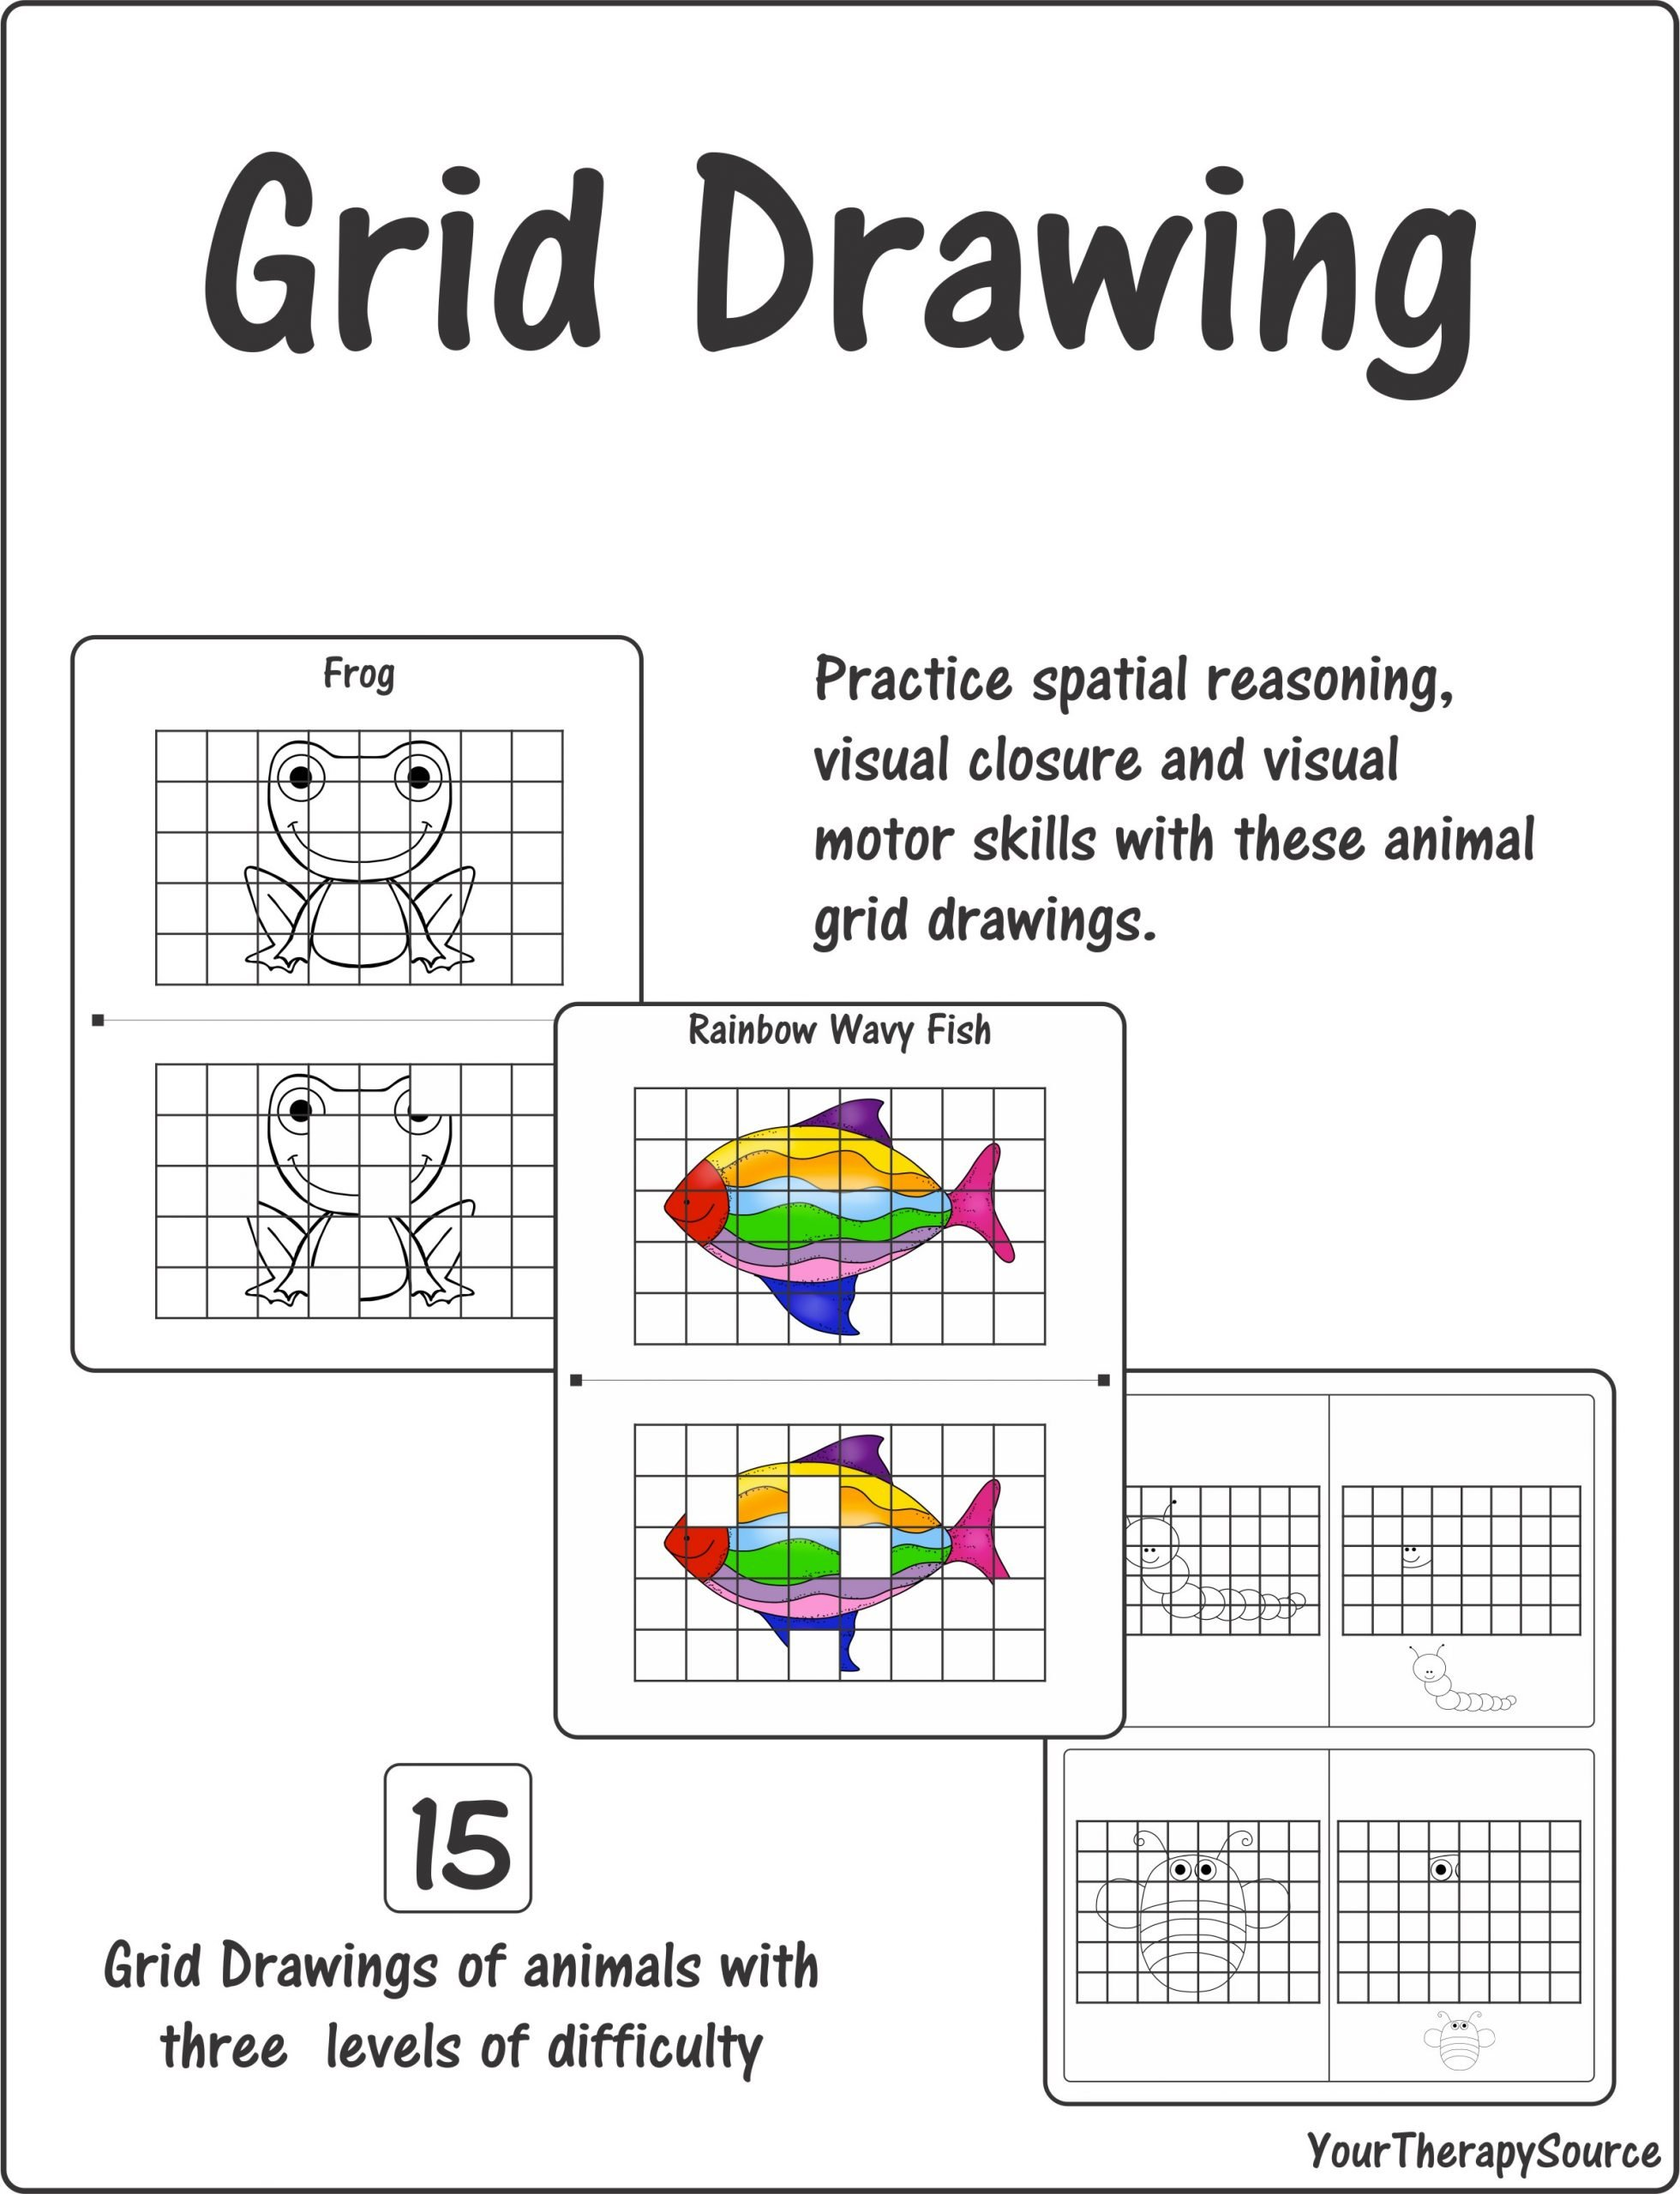 griddrawing